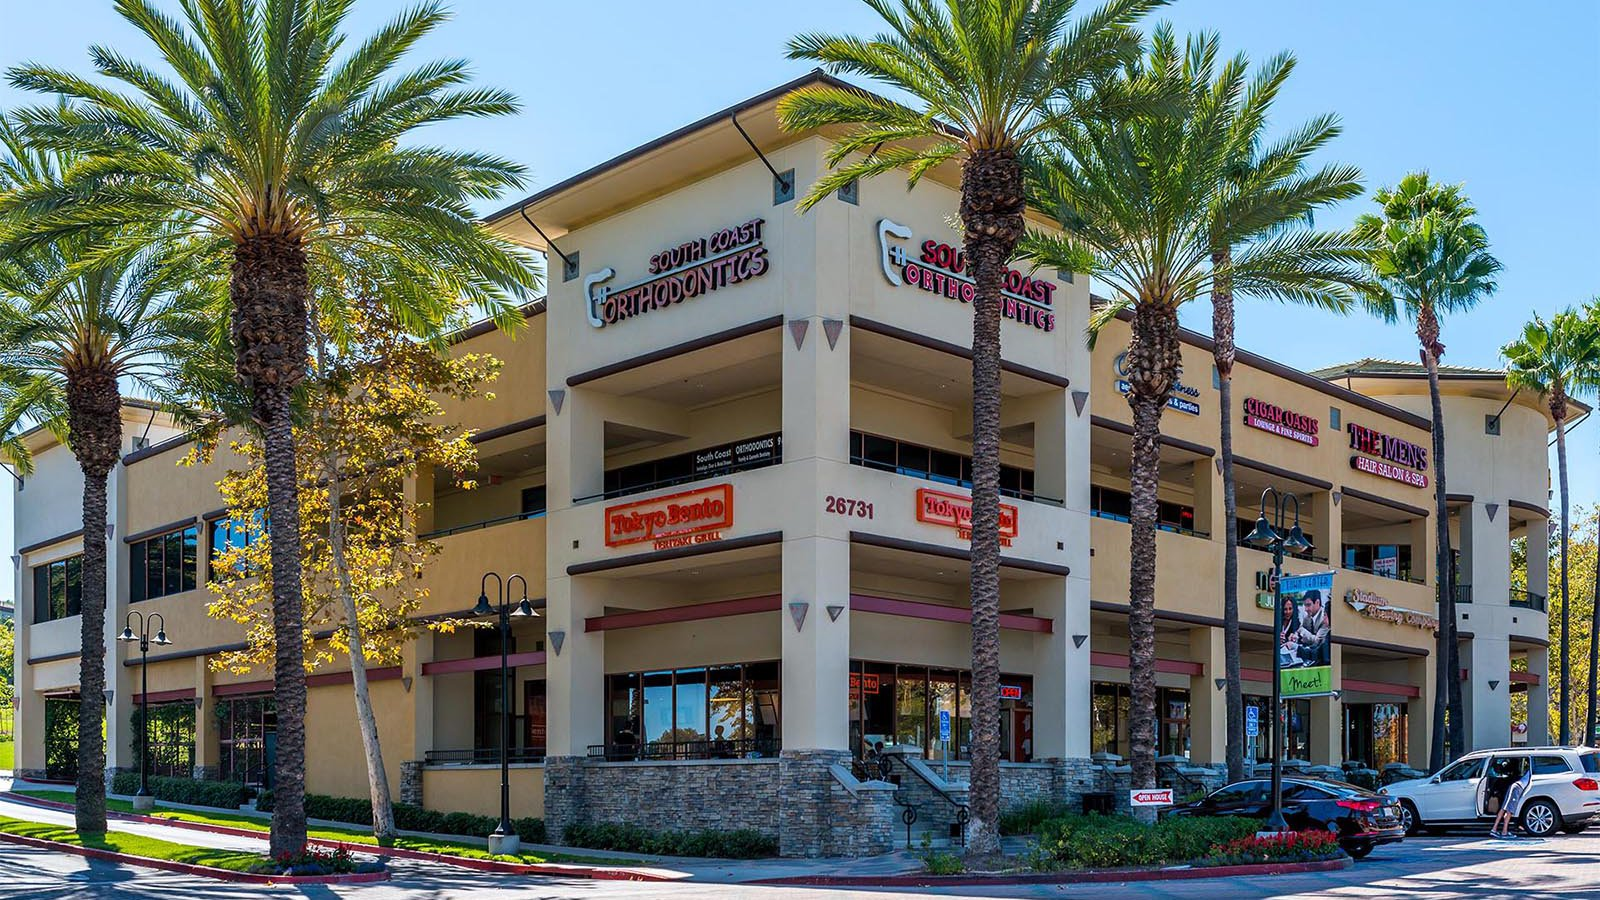 Exterior architectural photo of the Aliso Viejo Towne Center shopping center